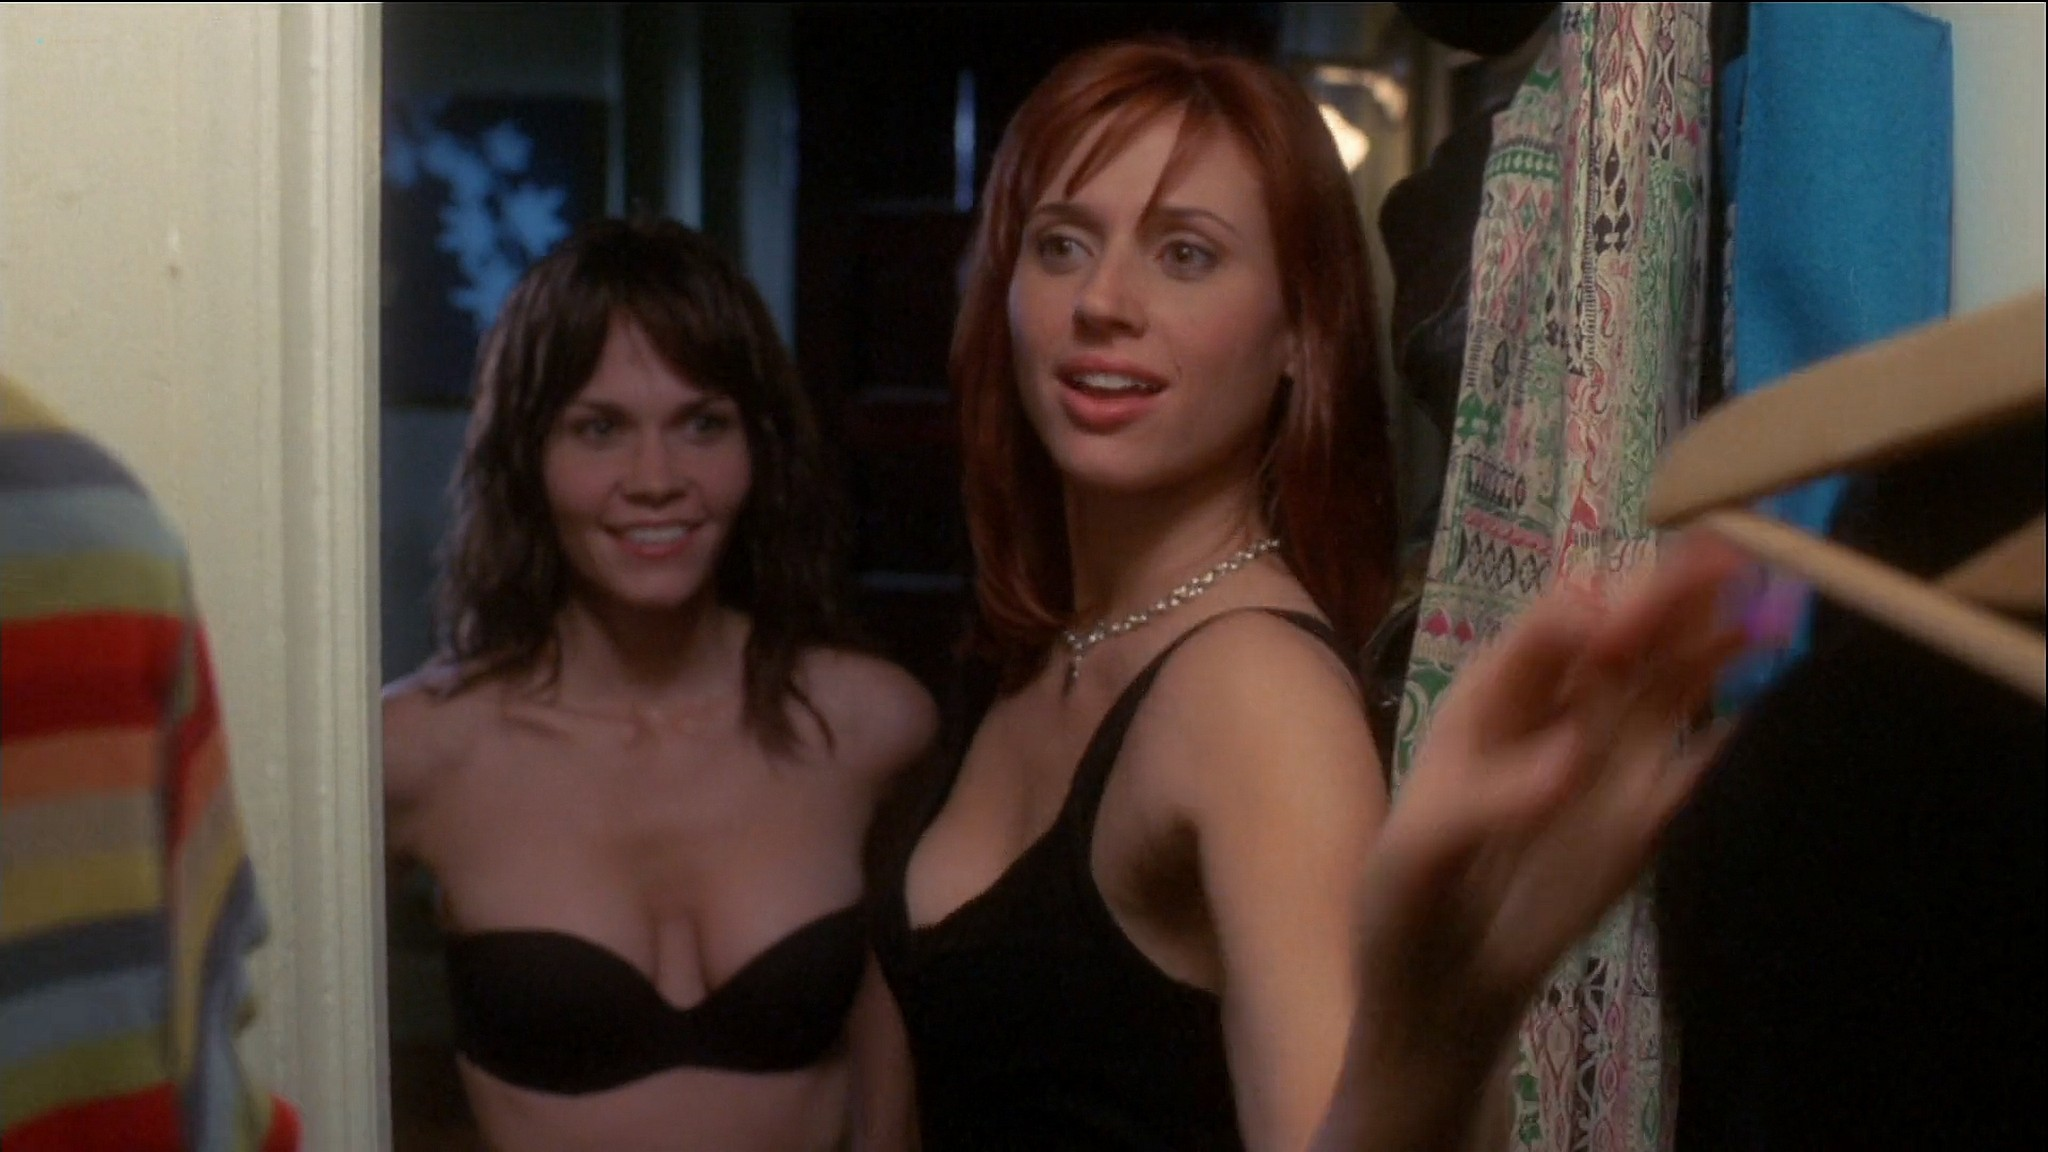 Kristen Miller hot and sex Allison Lange Brooke Burns sexy and some sex too Single White Female 2 2005 1080p Web 10